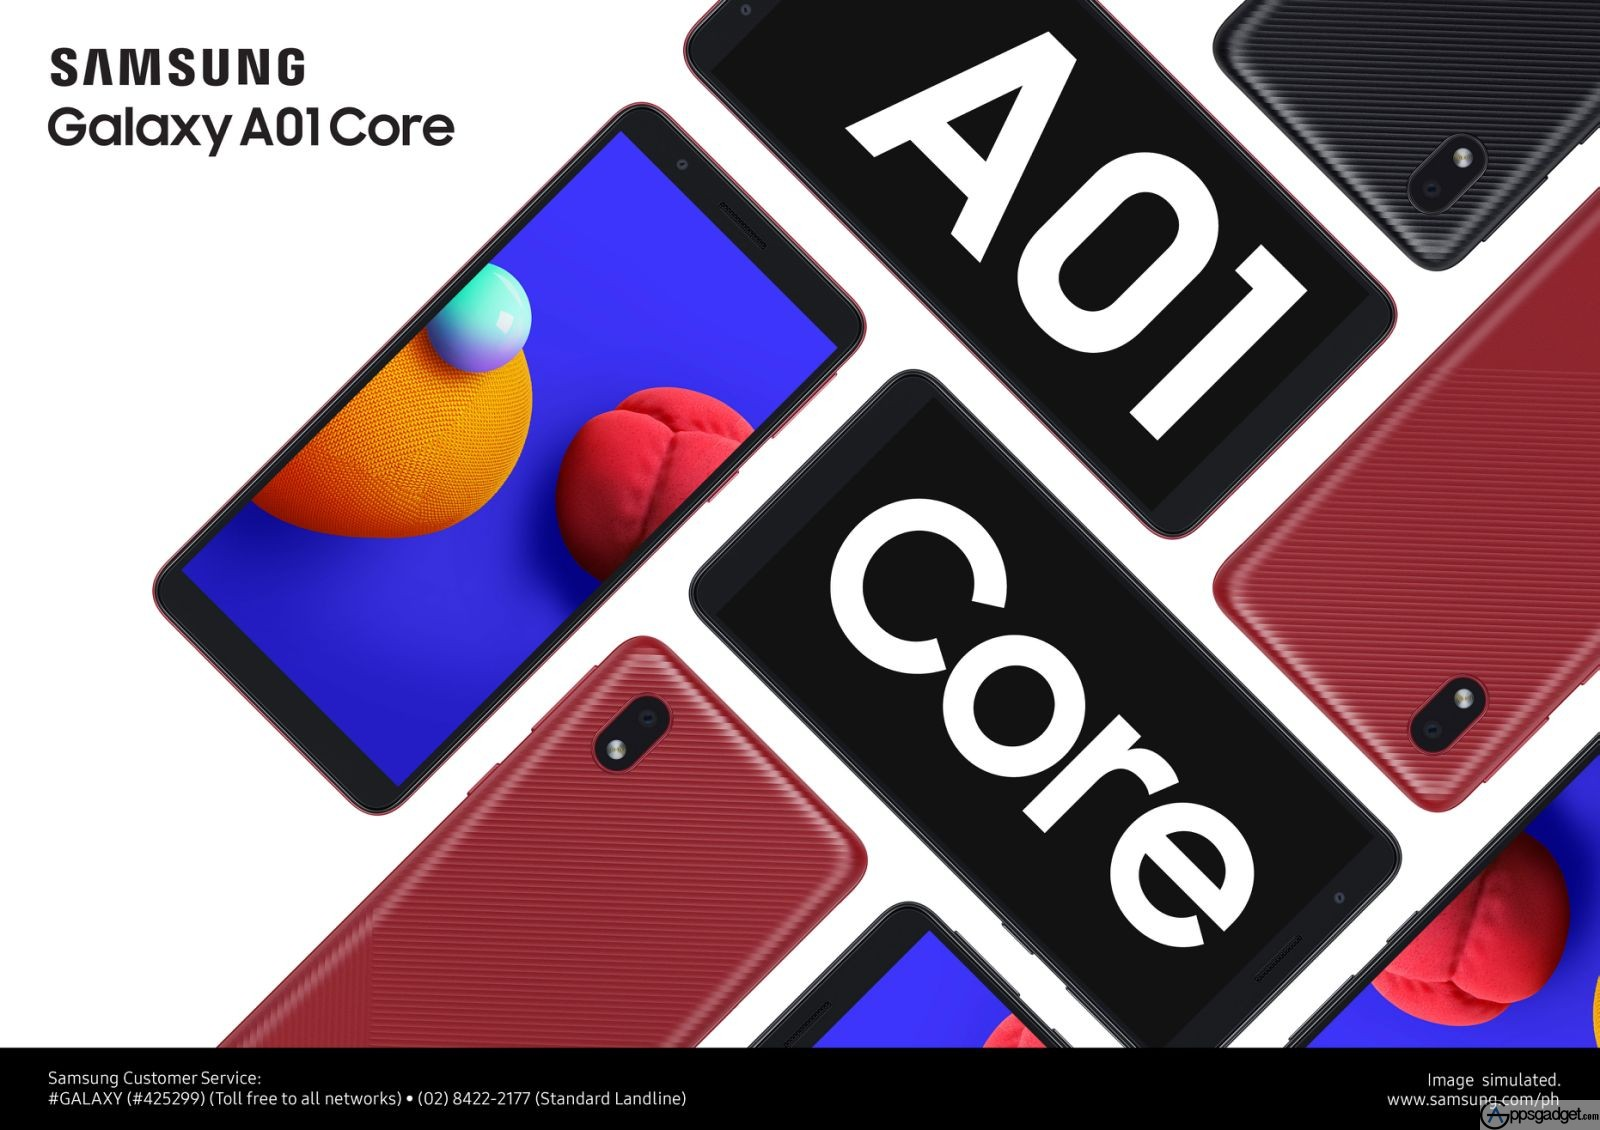 SAMSUNG Most Affordable Smartphone Galaxy A01 Core for only PHP 3,990 Launched